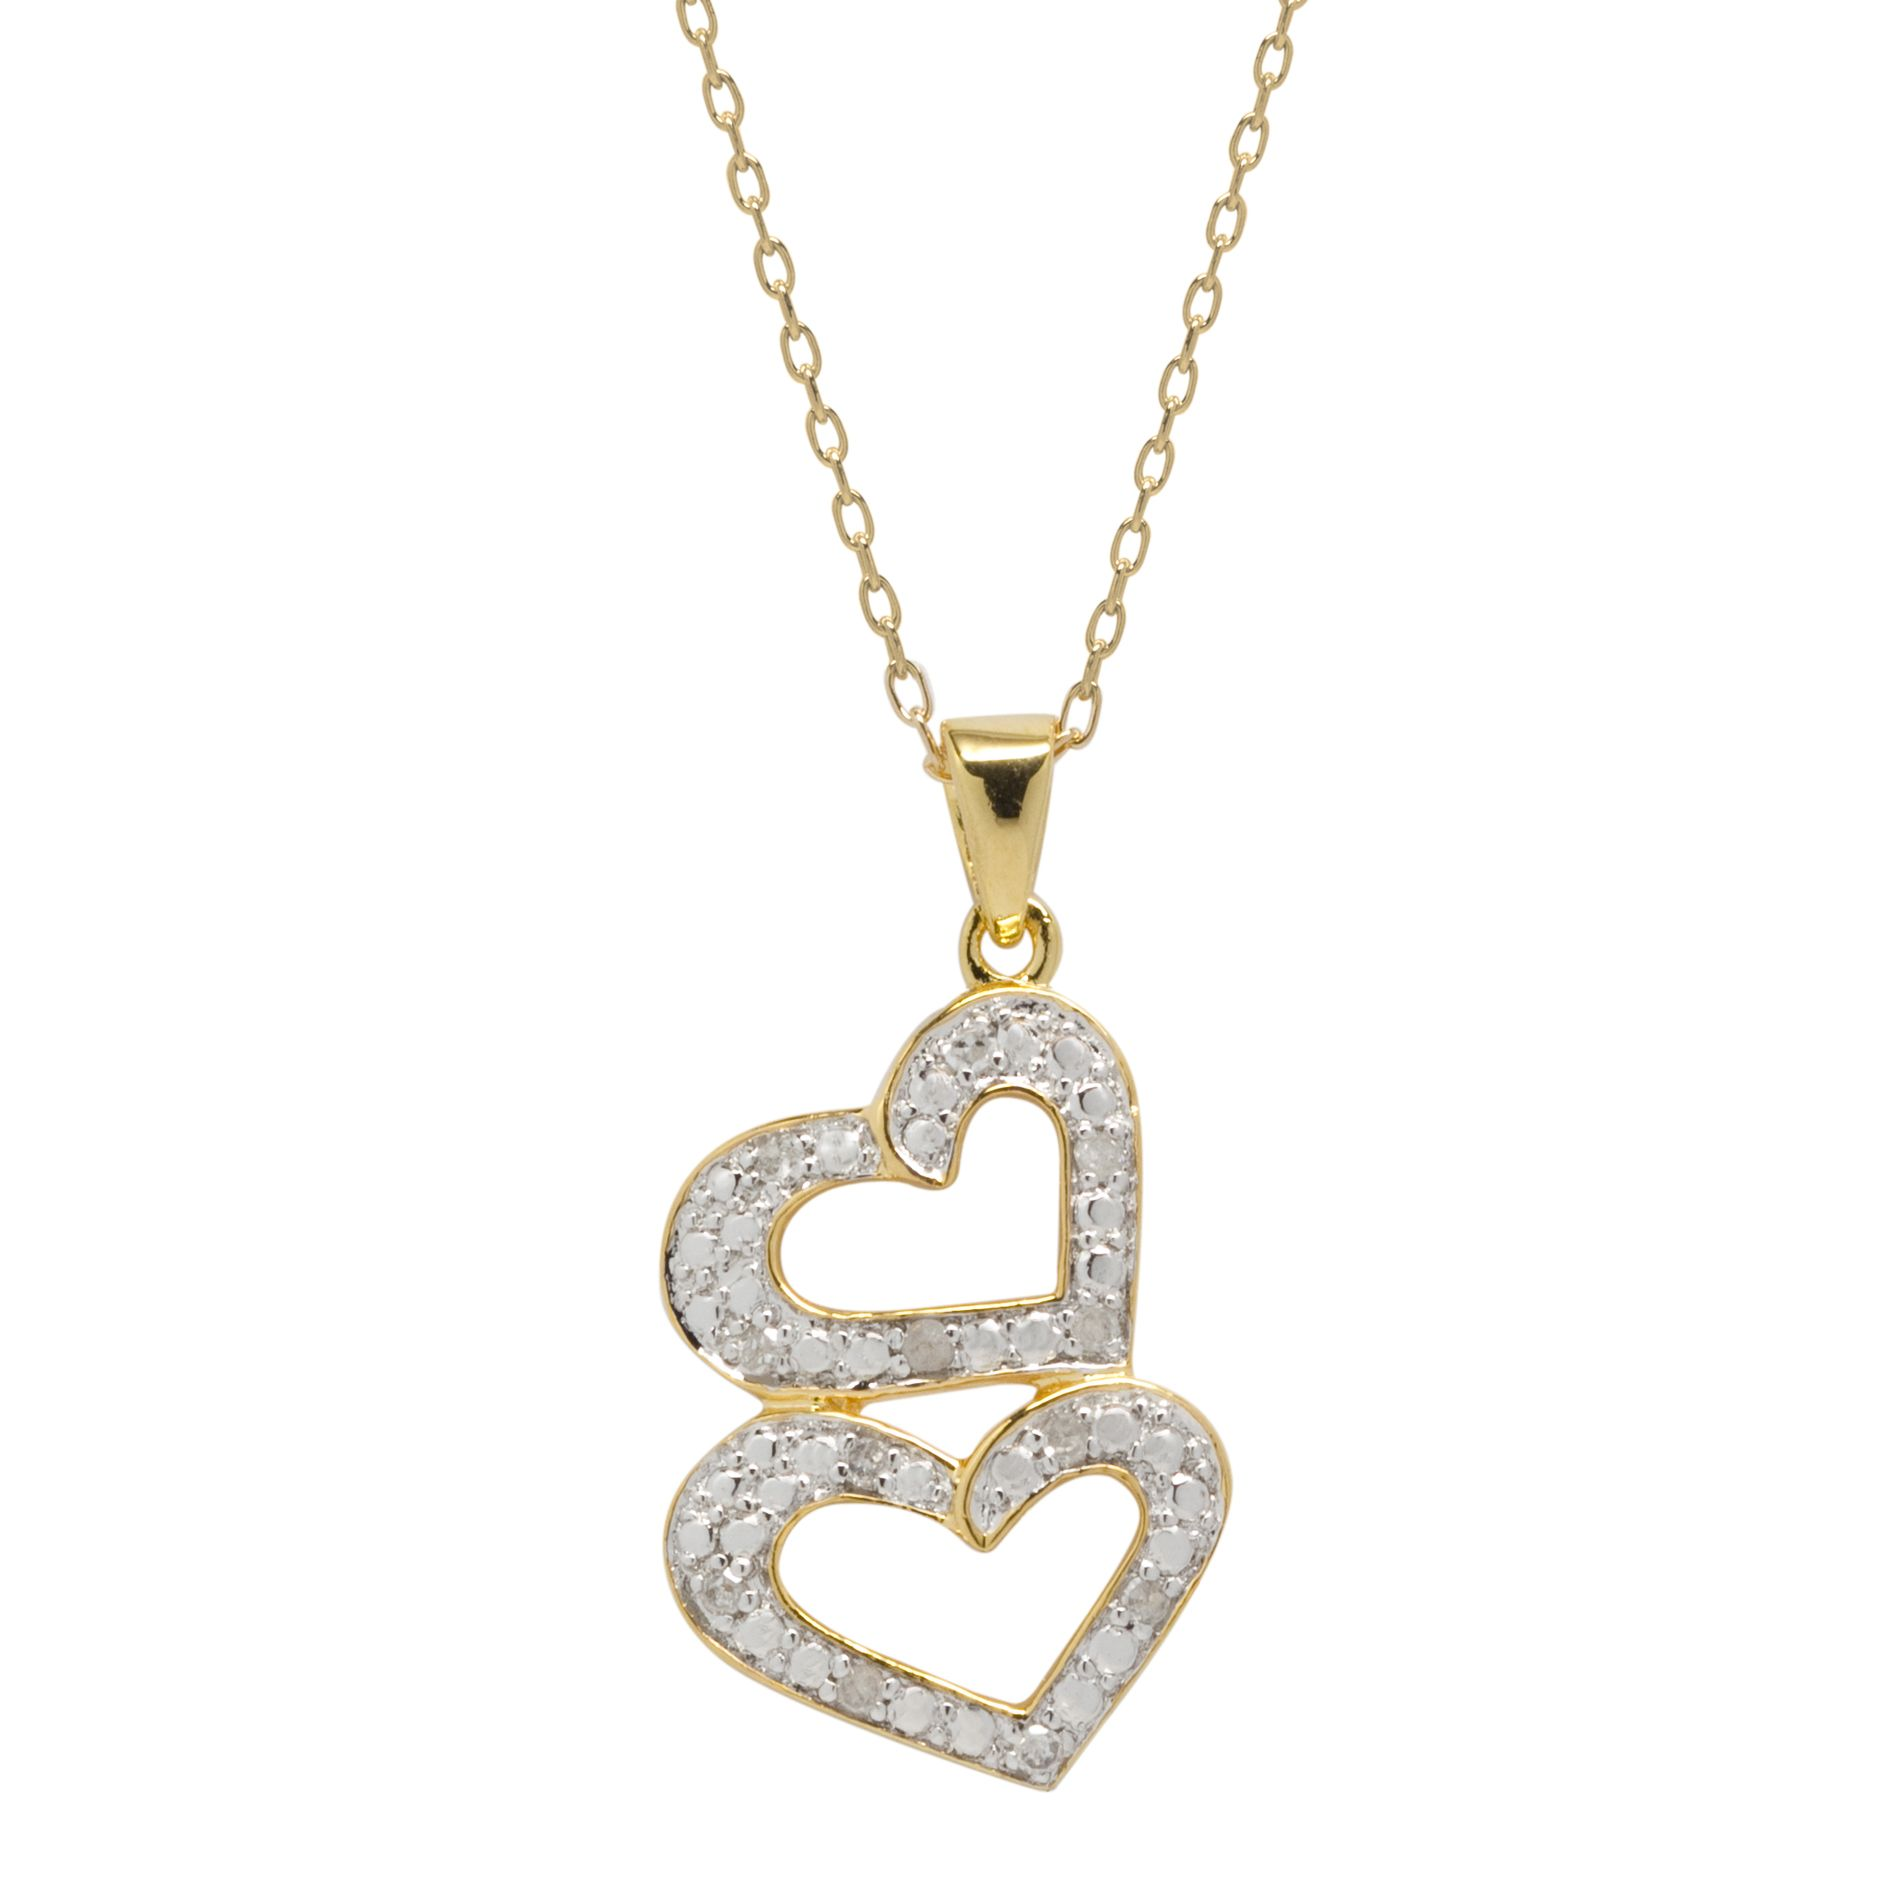 1/10cttw Diamond Heart Pendant 18k